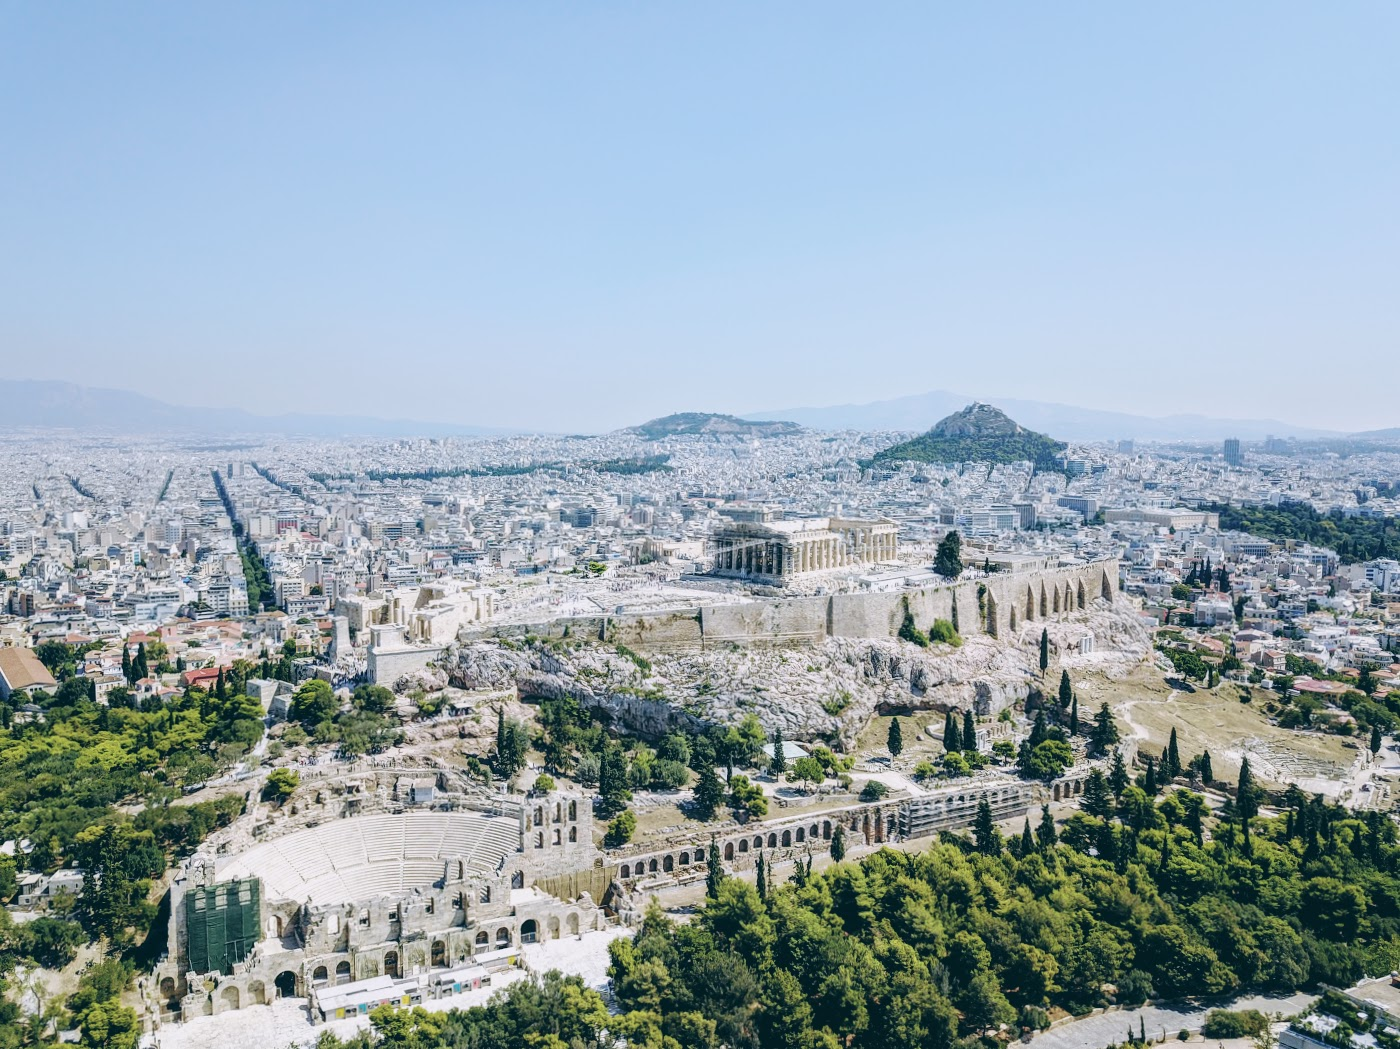 News: Athens named emerging cultural city of the world